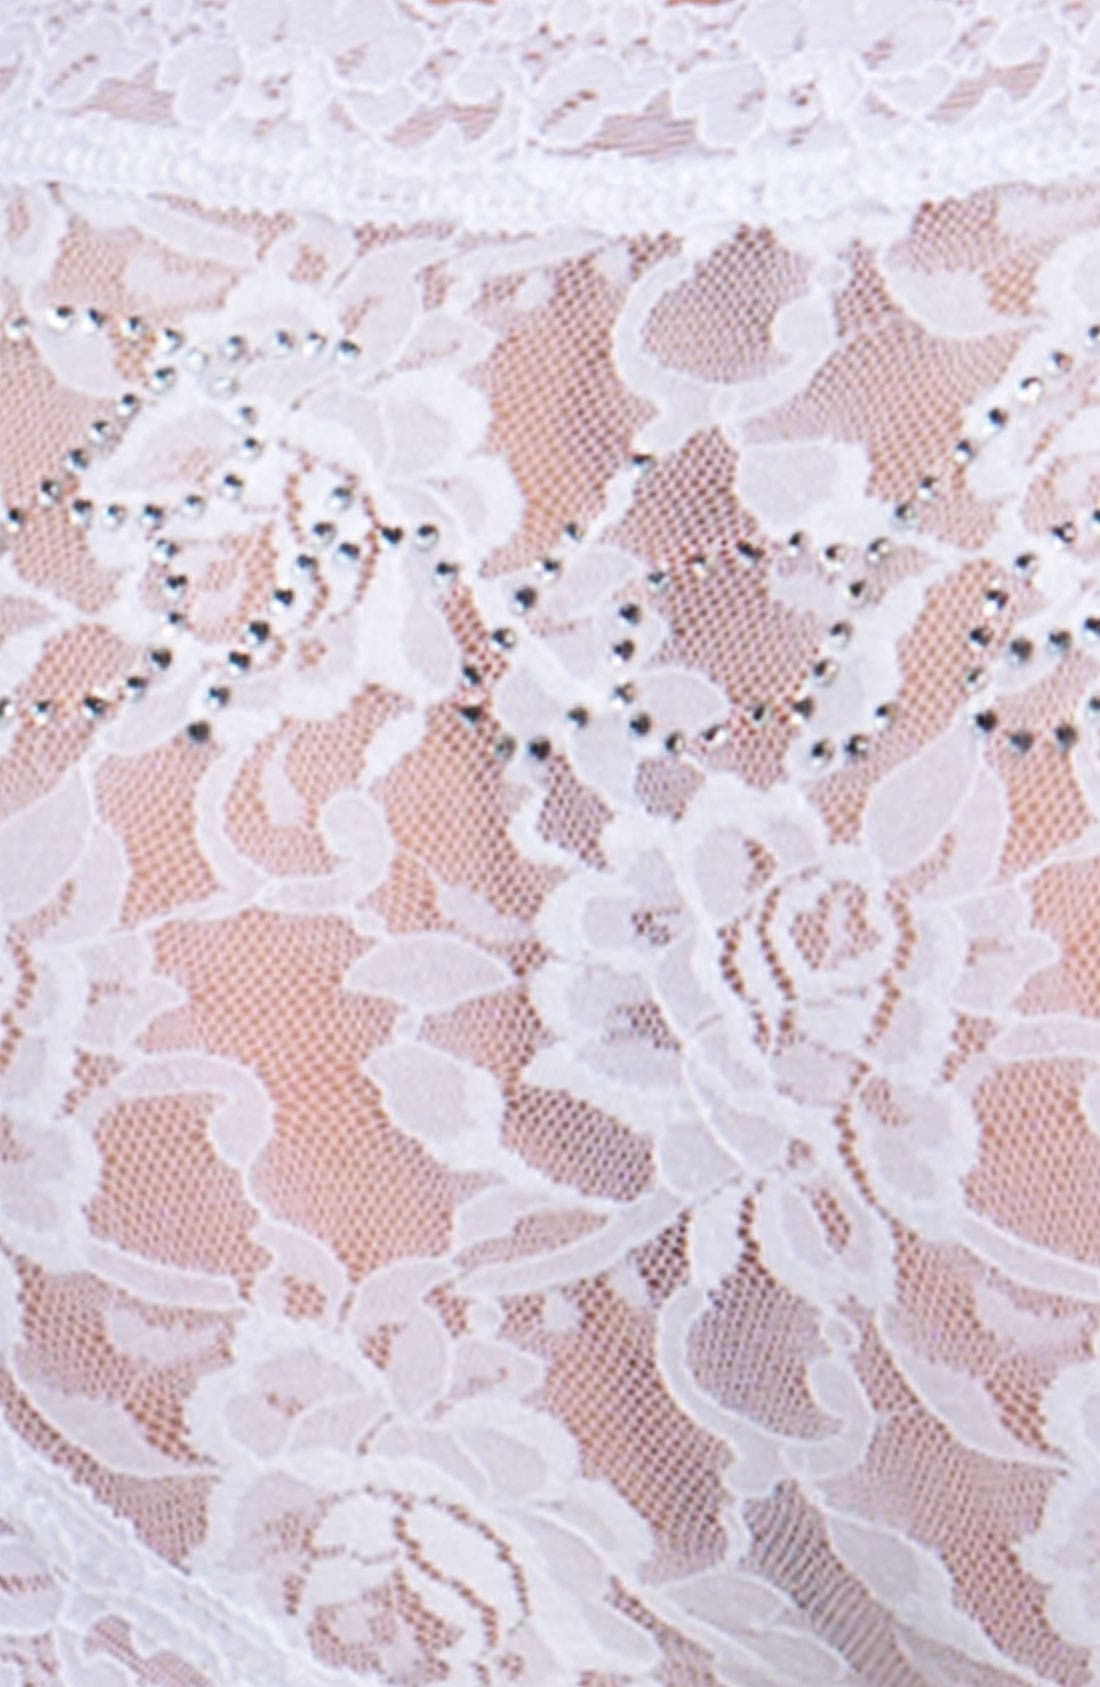 'Bride' Lace Hipster Panties,                             Alternate thumbnail 4, color,                             WHITE